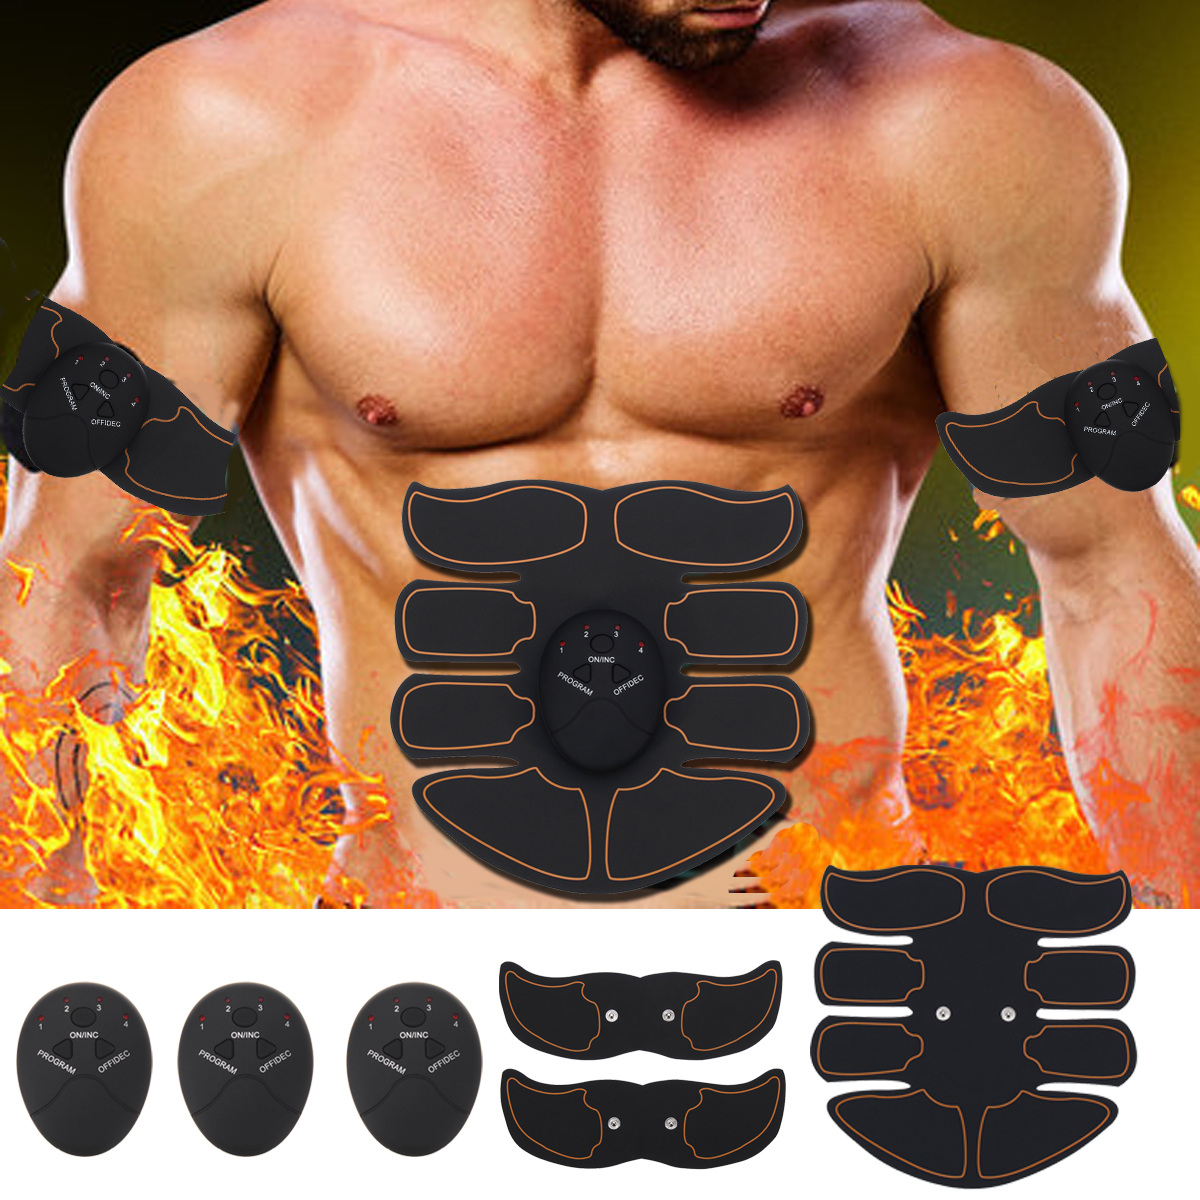 6Pcs/set Electric Smart Abs Stimulator Training Fitness Gear Muscle Training Abdominal Toning Belt Trainer